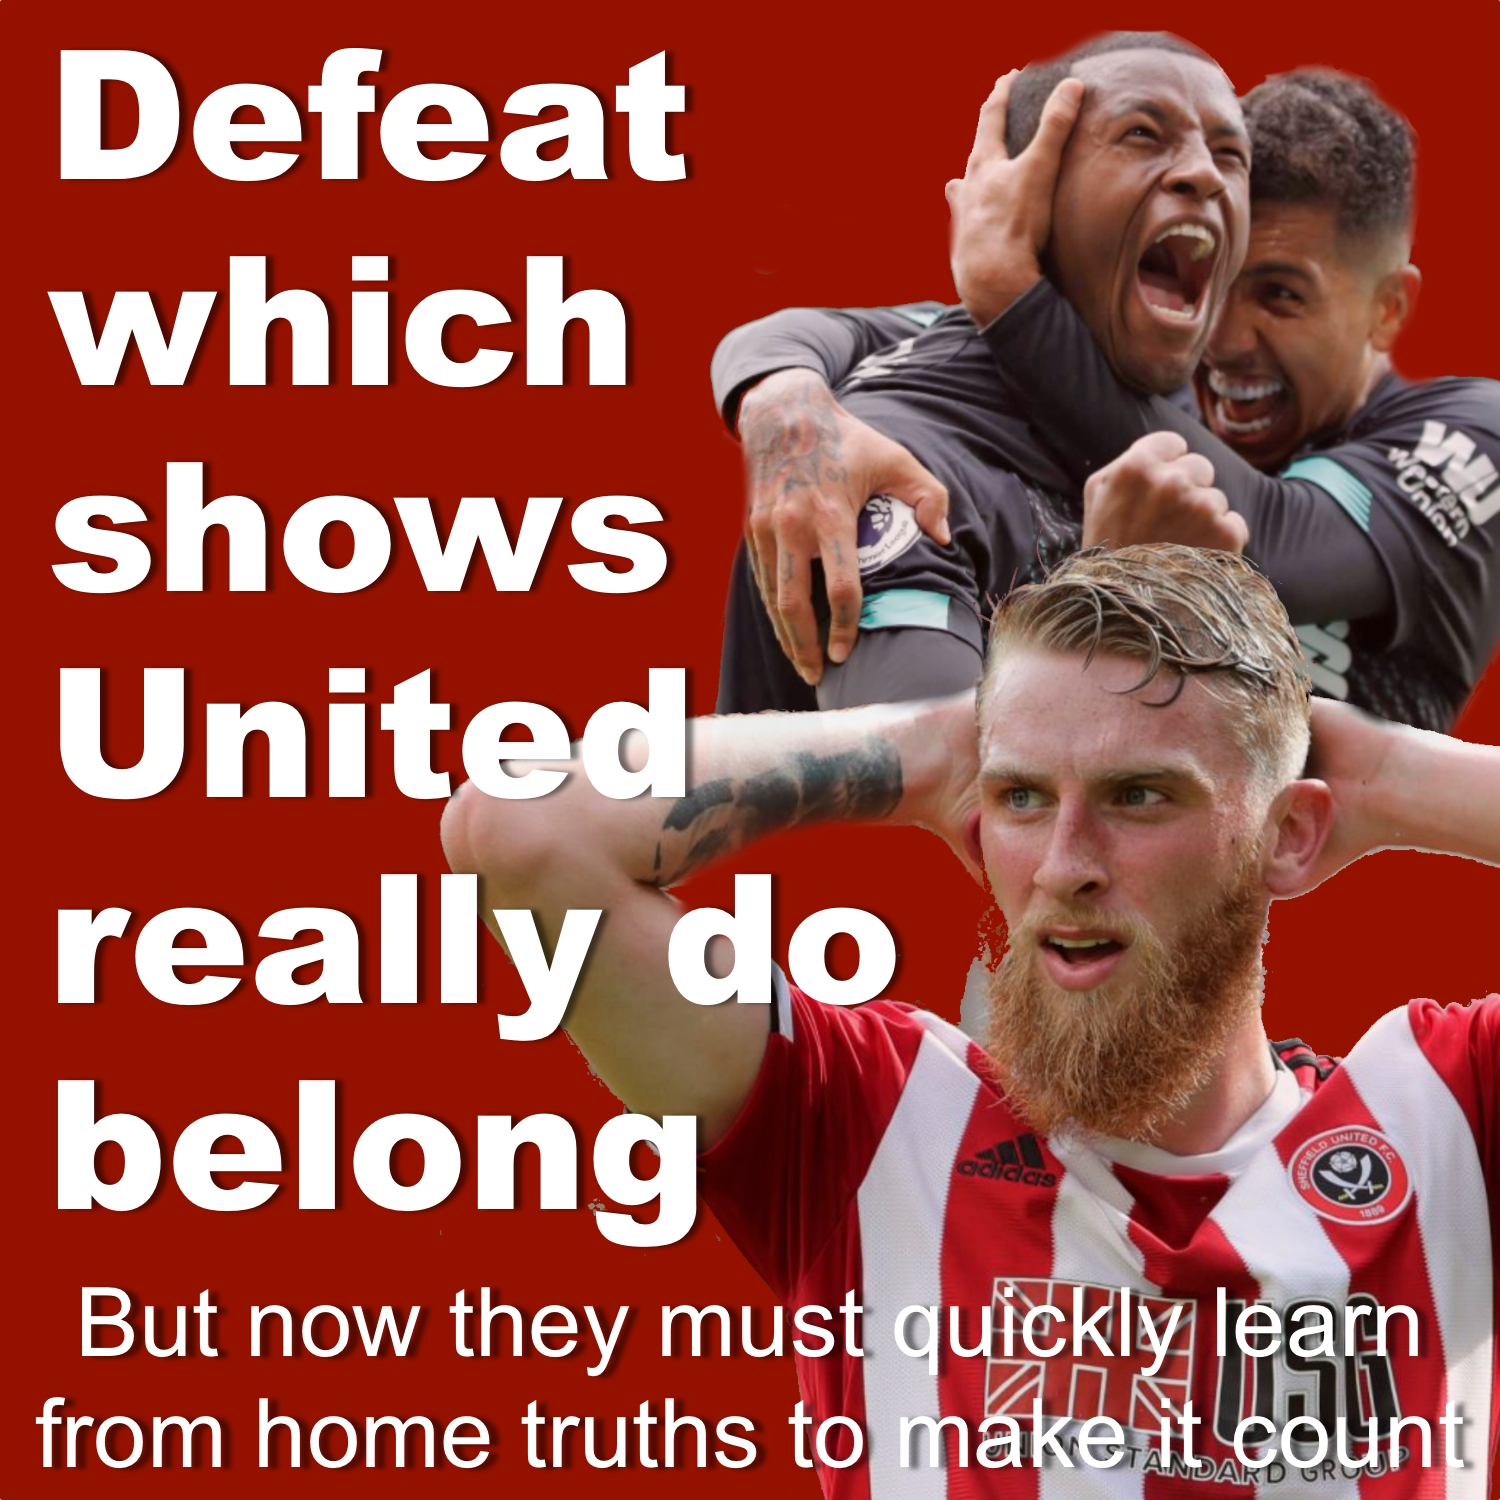 Defeat that shows Sheffield United belong in Premier League